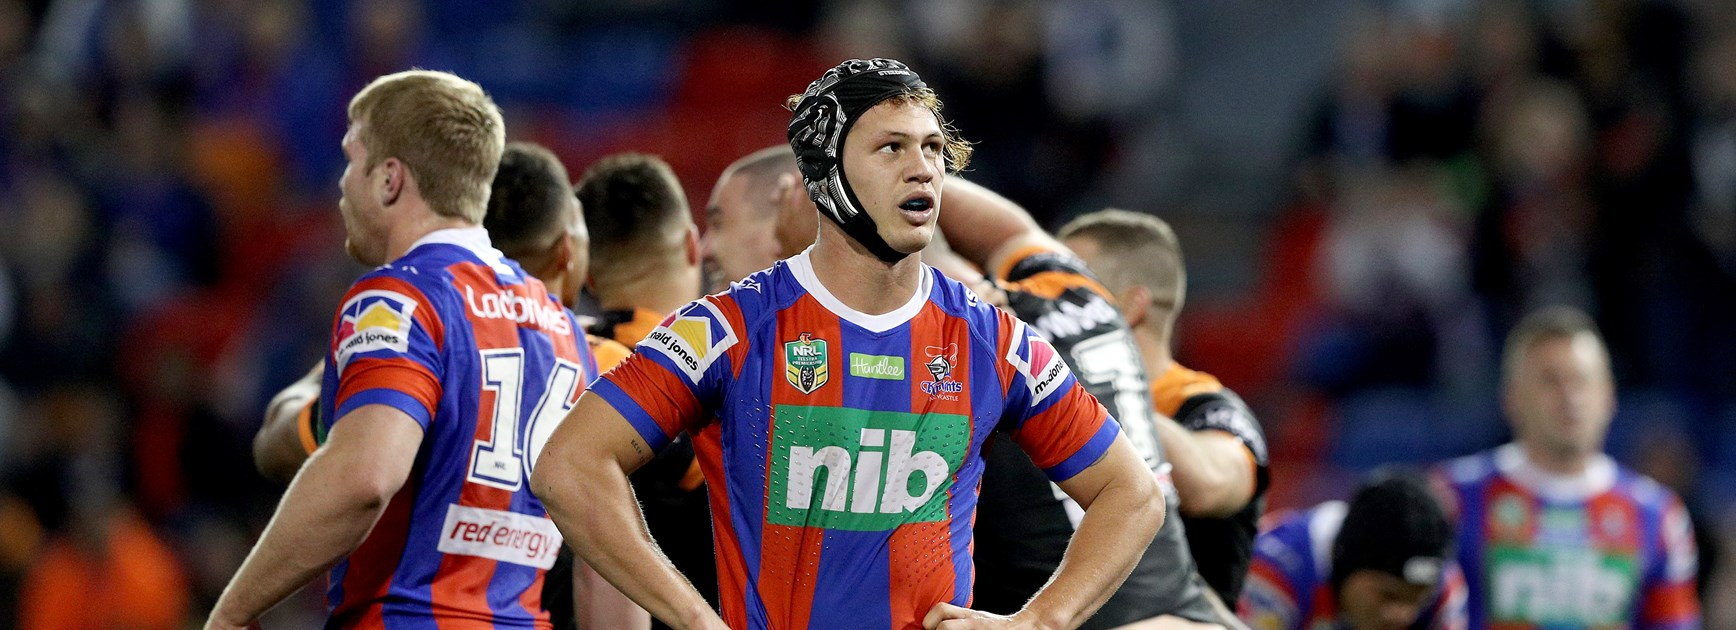 Kalyn Ponga: 'I might miss the last two games'